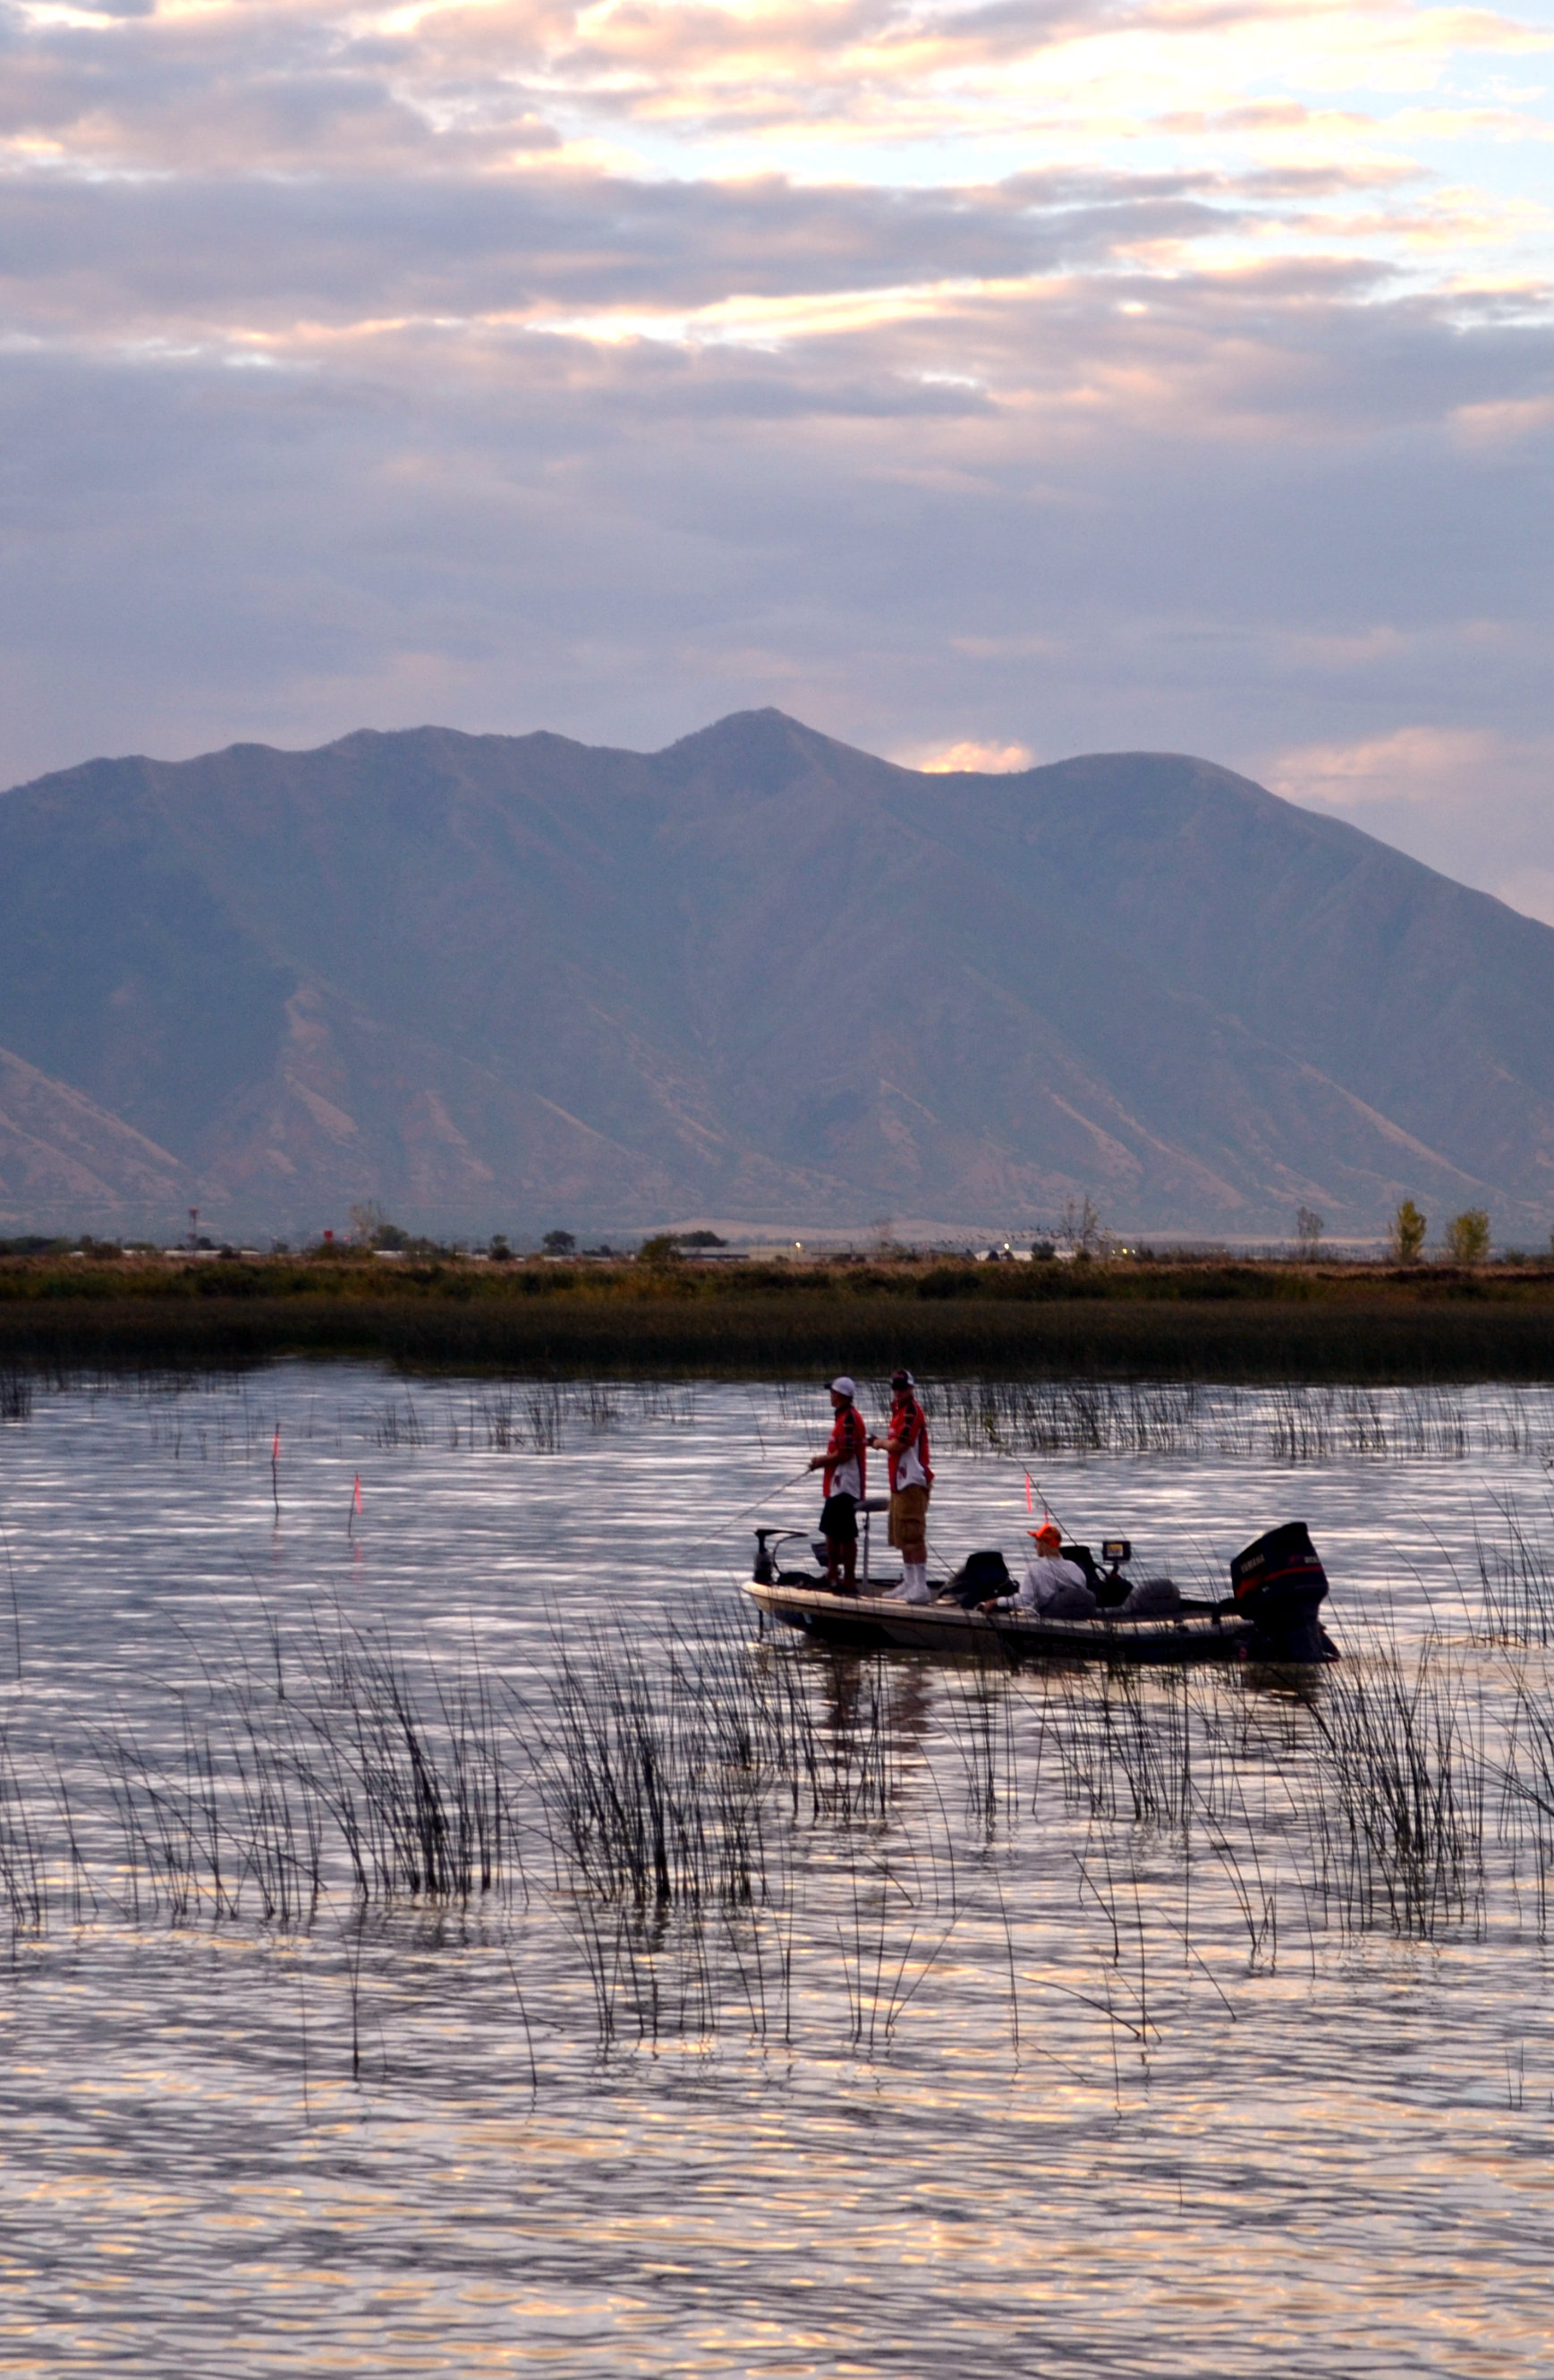 A fishing boat on Utah Lake